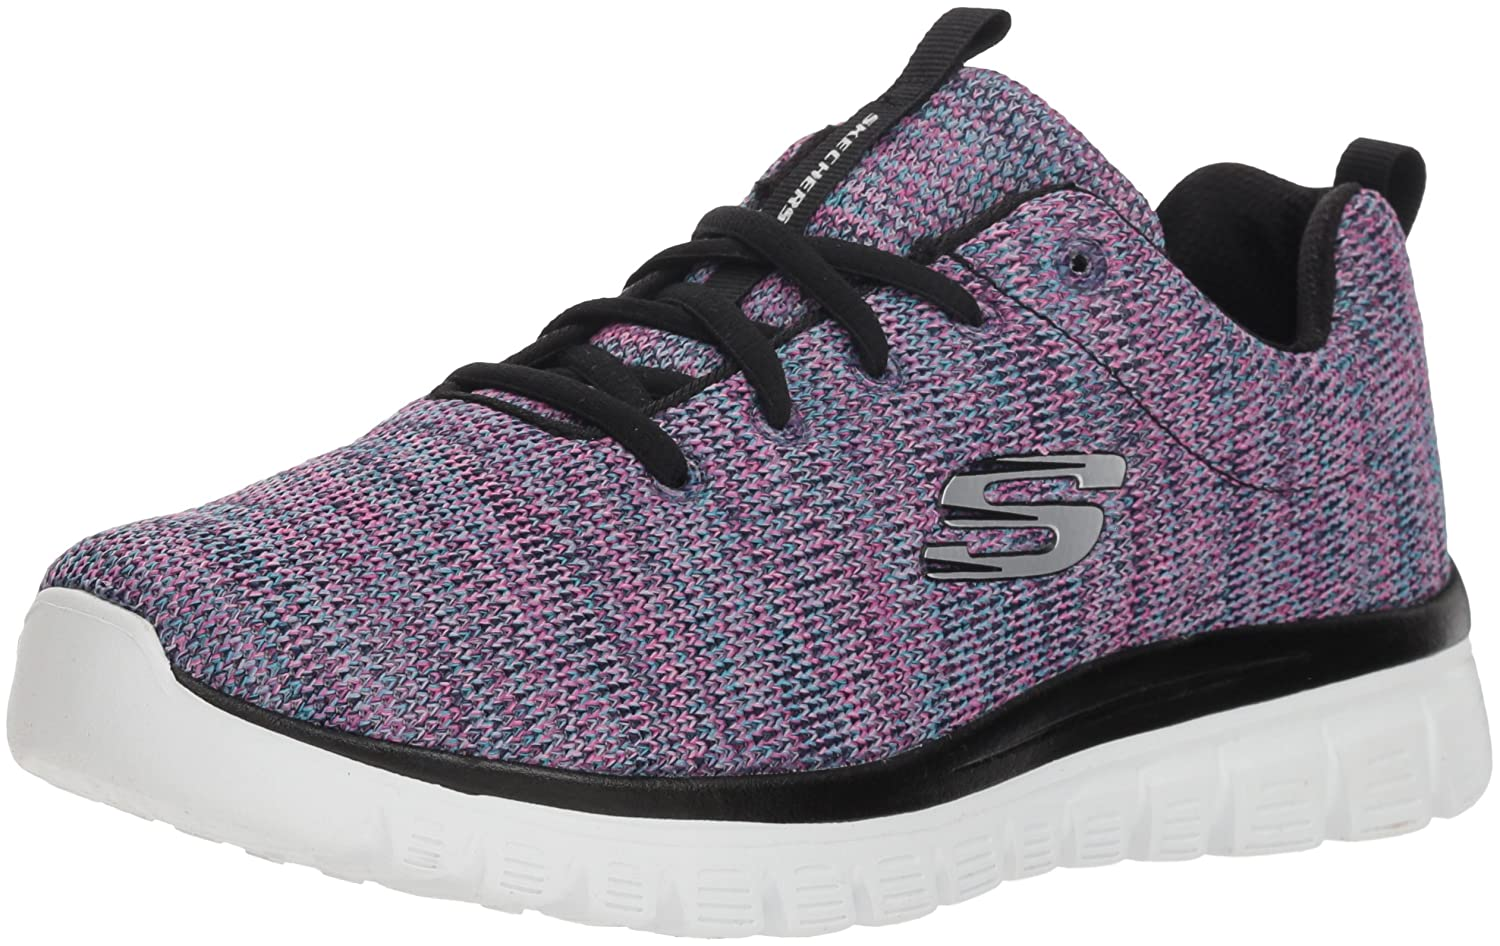 Skechers Women's Graceful-Twisted Fortune Sneaker 12614